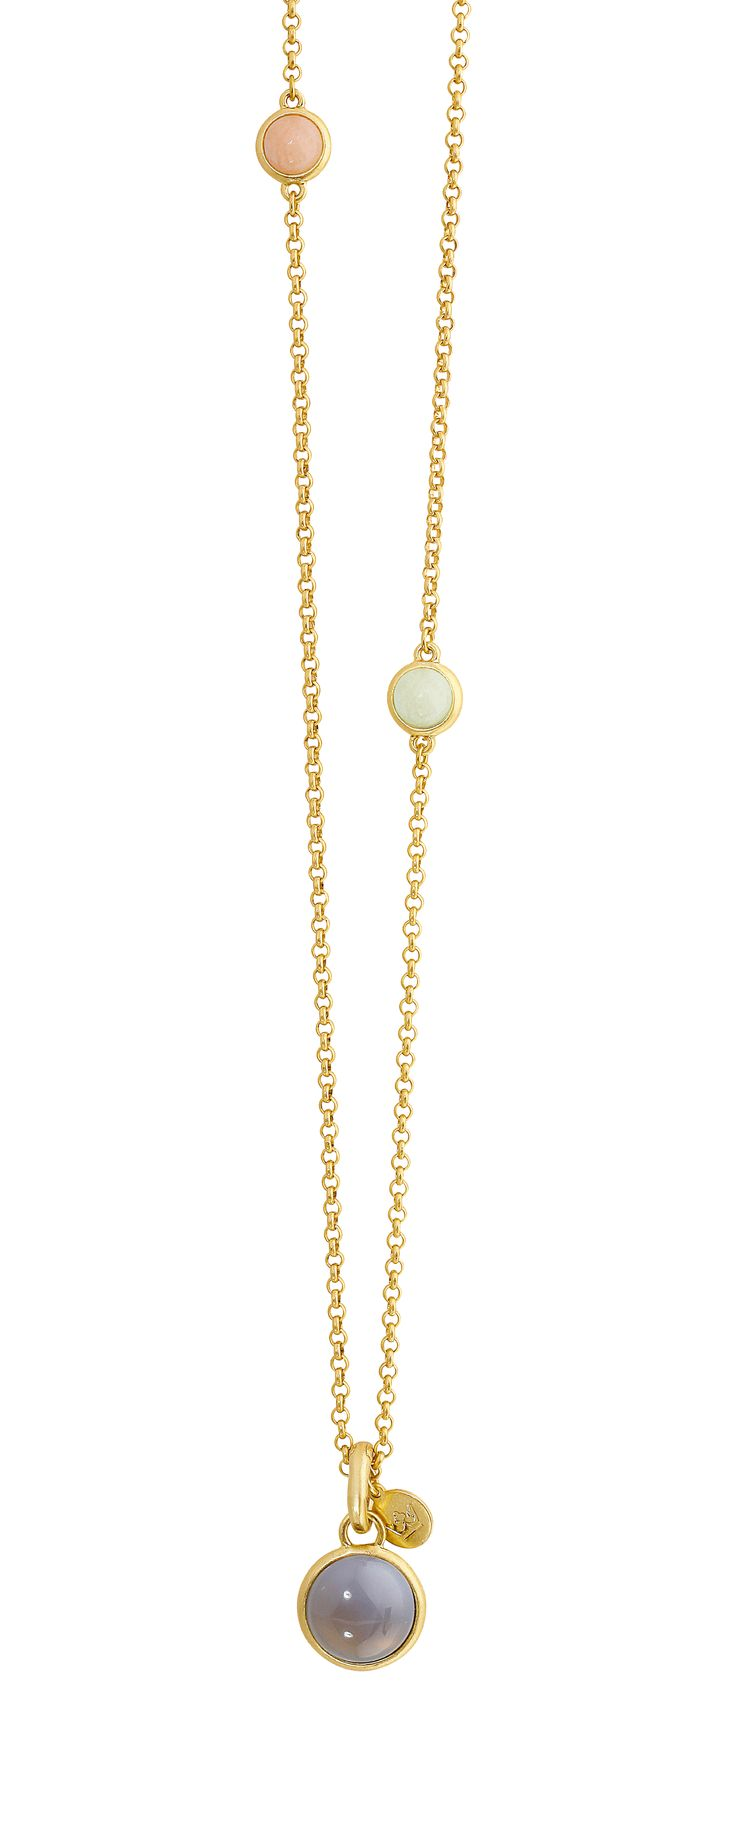 A thing gold chained necklace with coloured  stones by SENCE Copenhagen